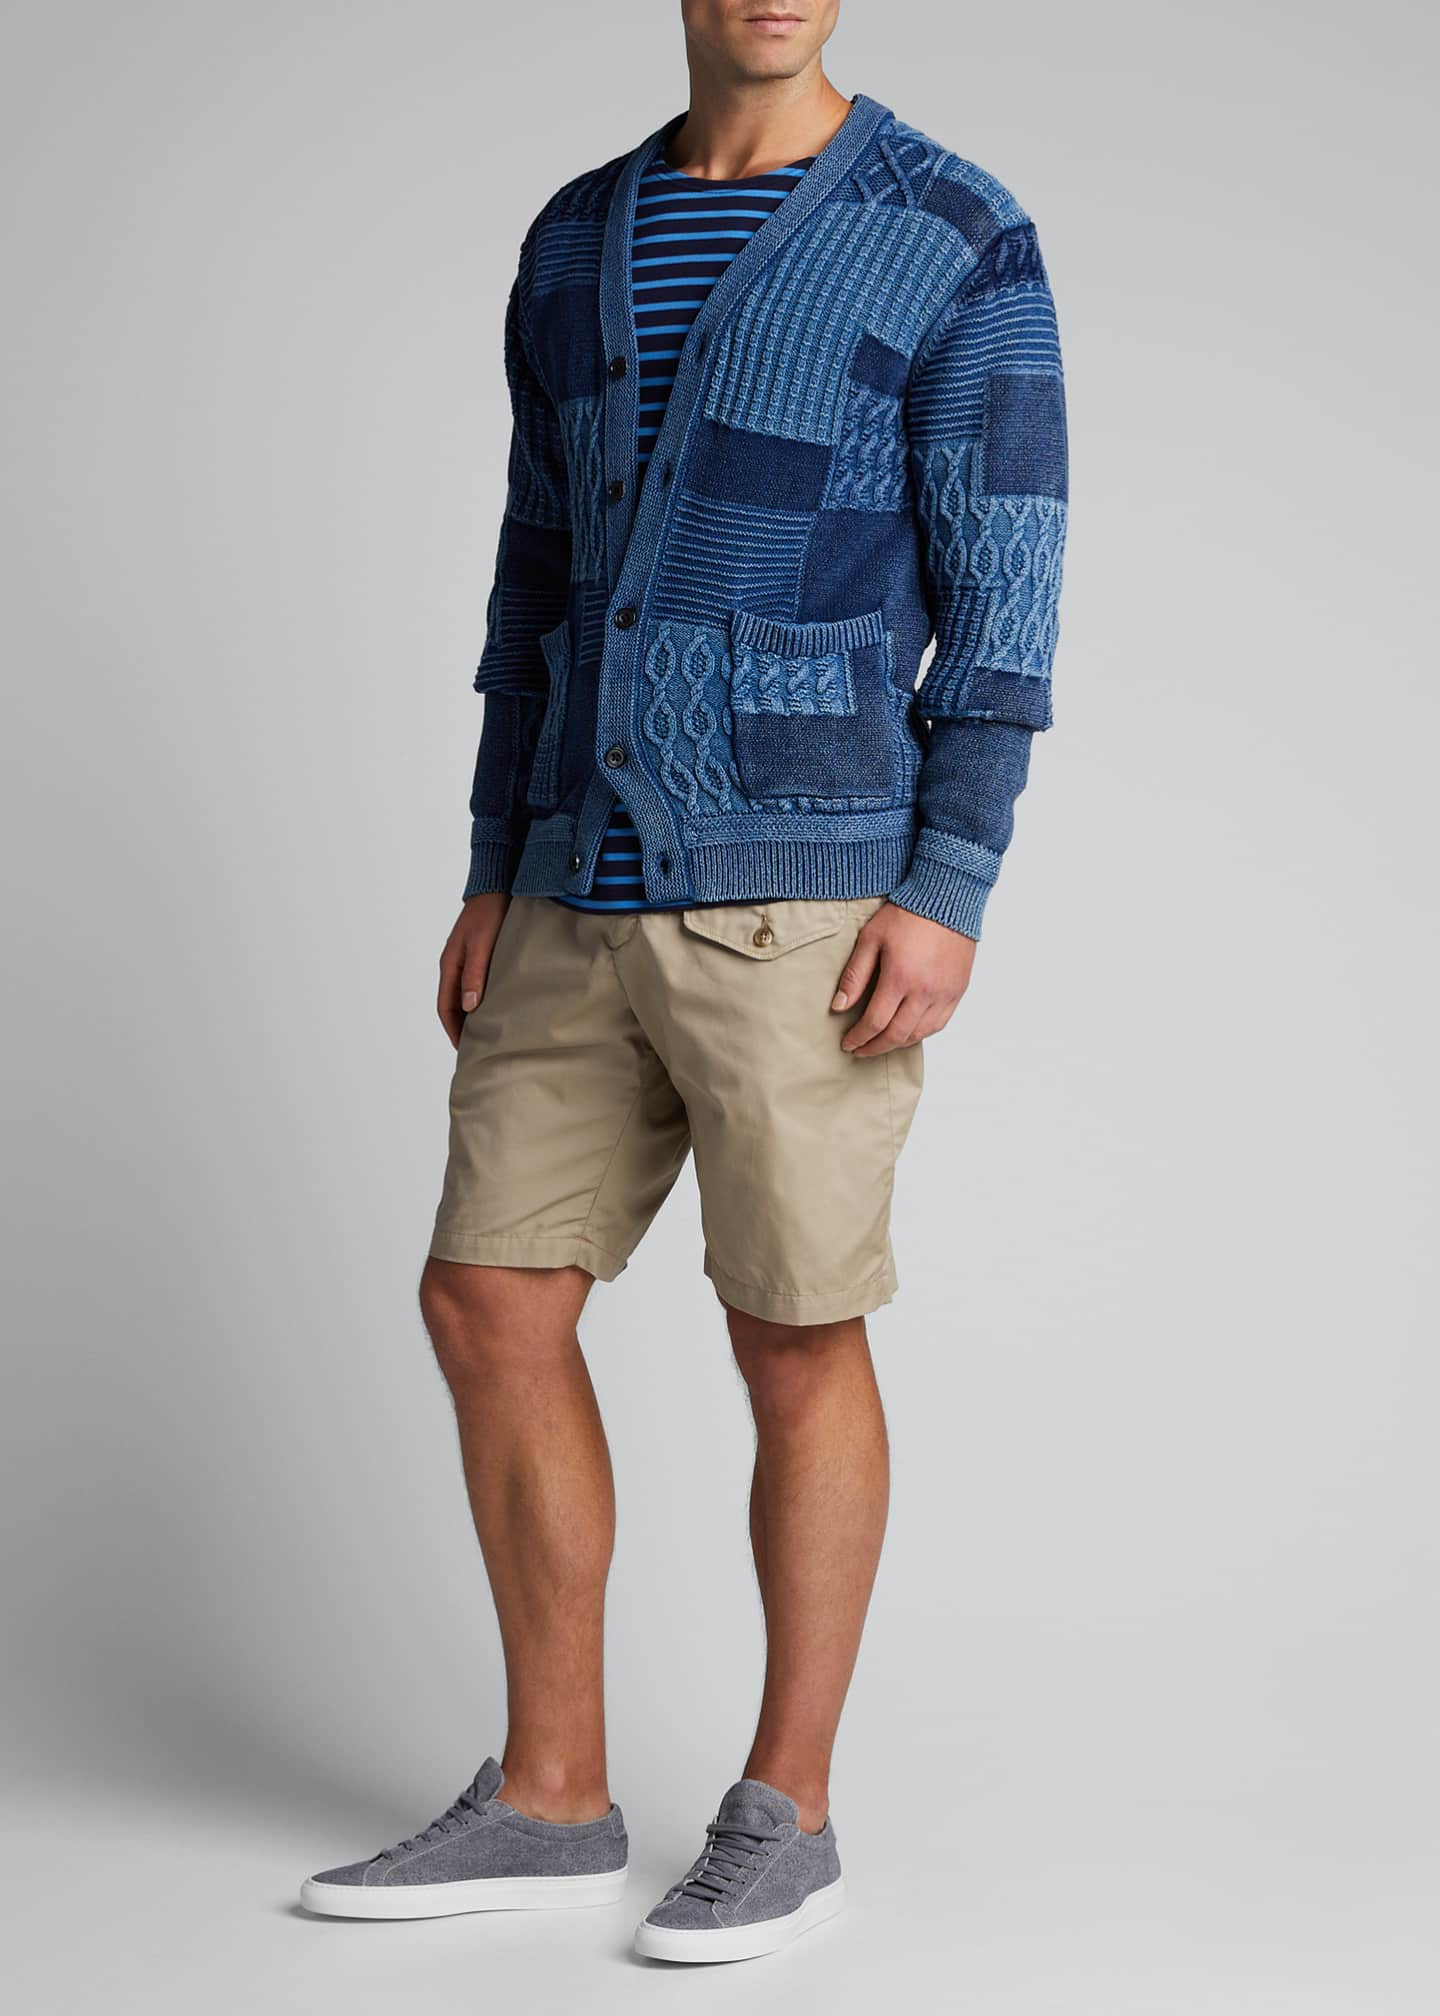 Image 1 of 5: Men's Patchwork Cable Cardigan Sweater